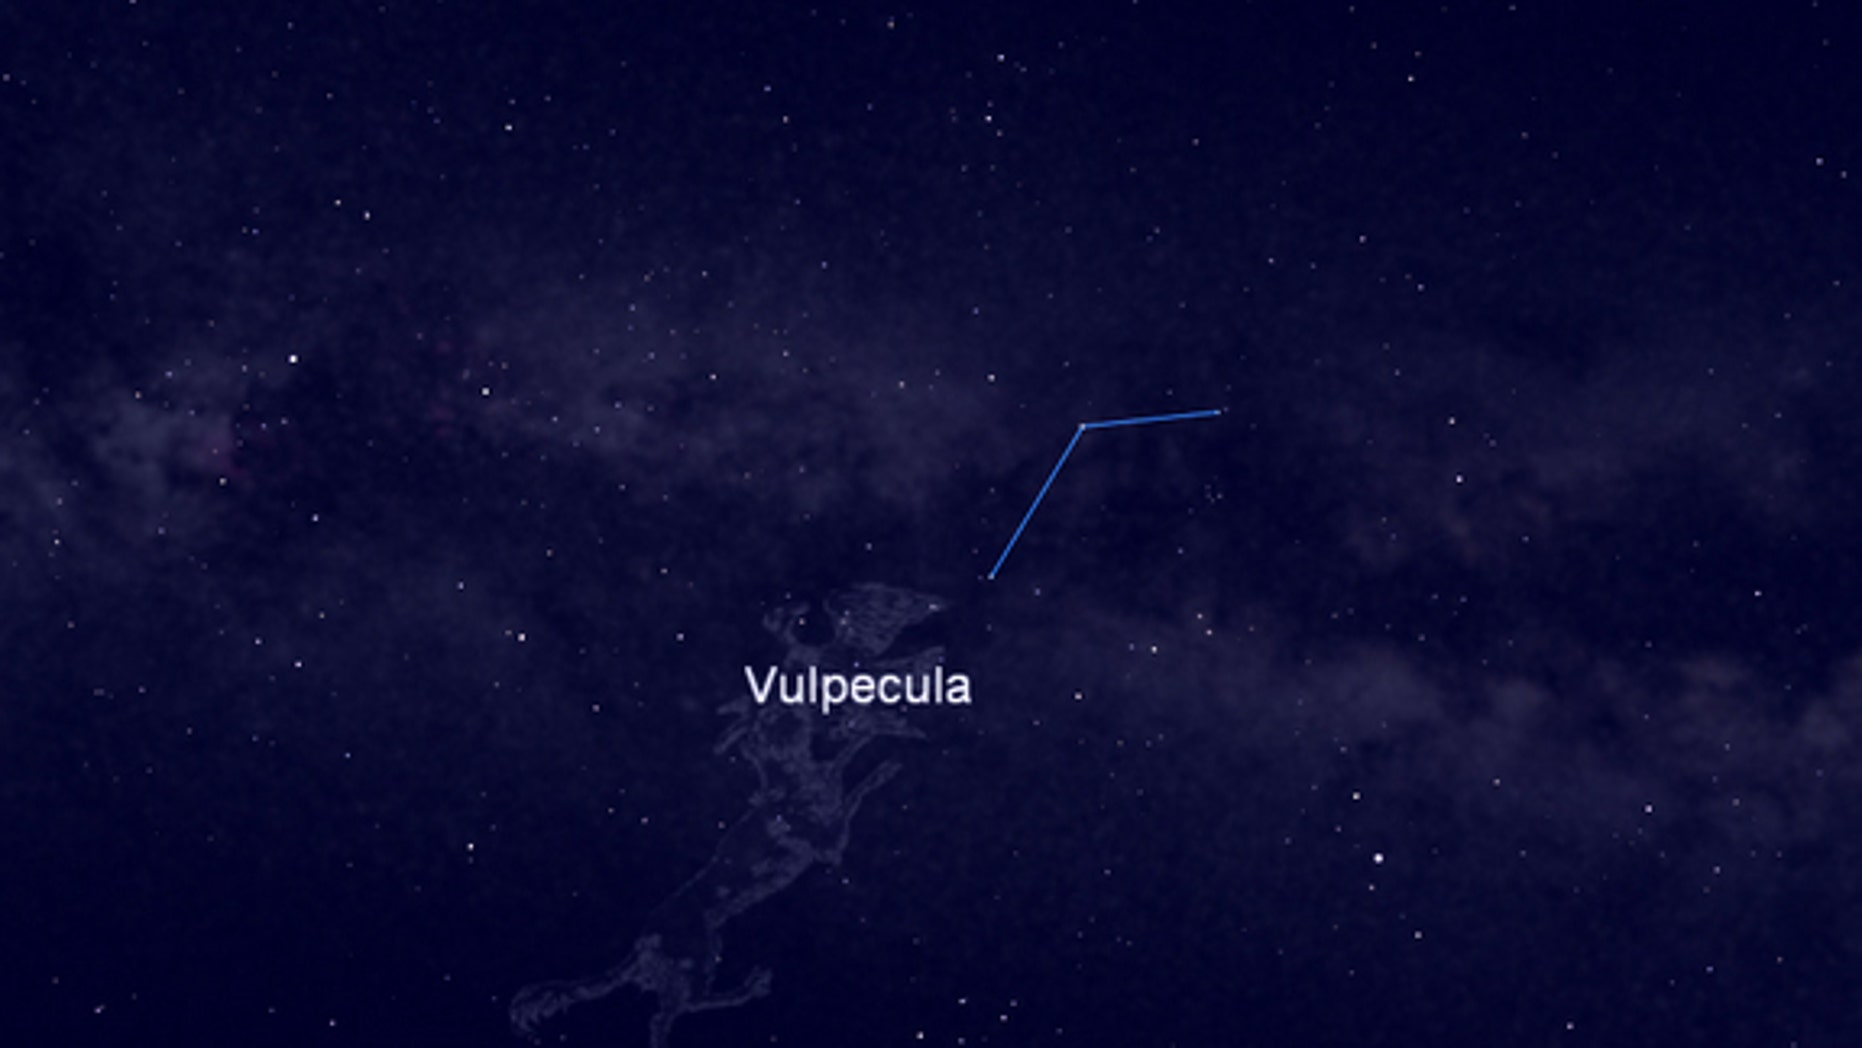 This night sky map shows the location of the constellation Vulpecula, the Little Fox, home to Brocchi's Cluster, a star cluster visible in binoculars and small telescopes. The constellation is visible in the east-southeast night sky between sta